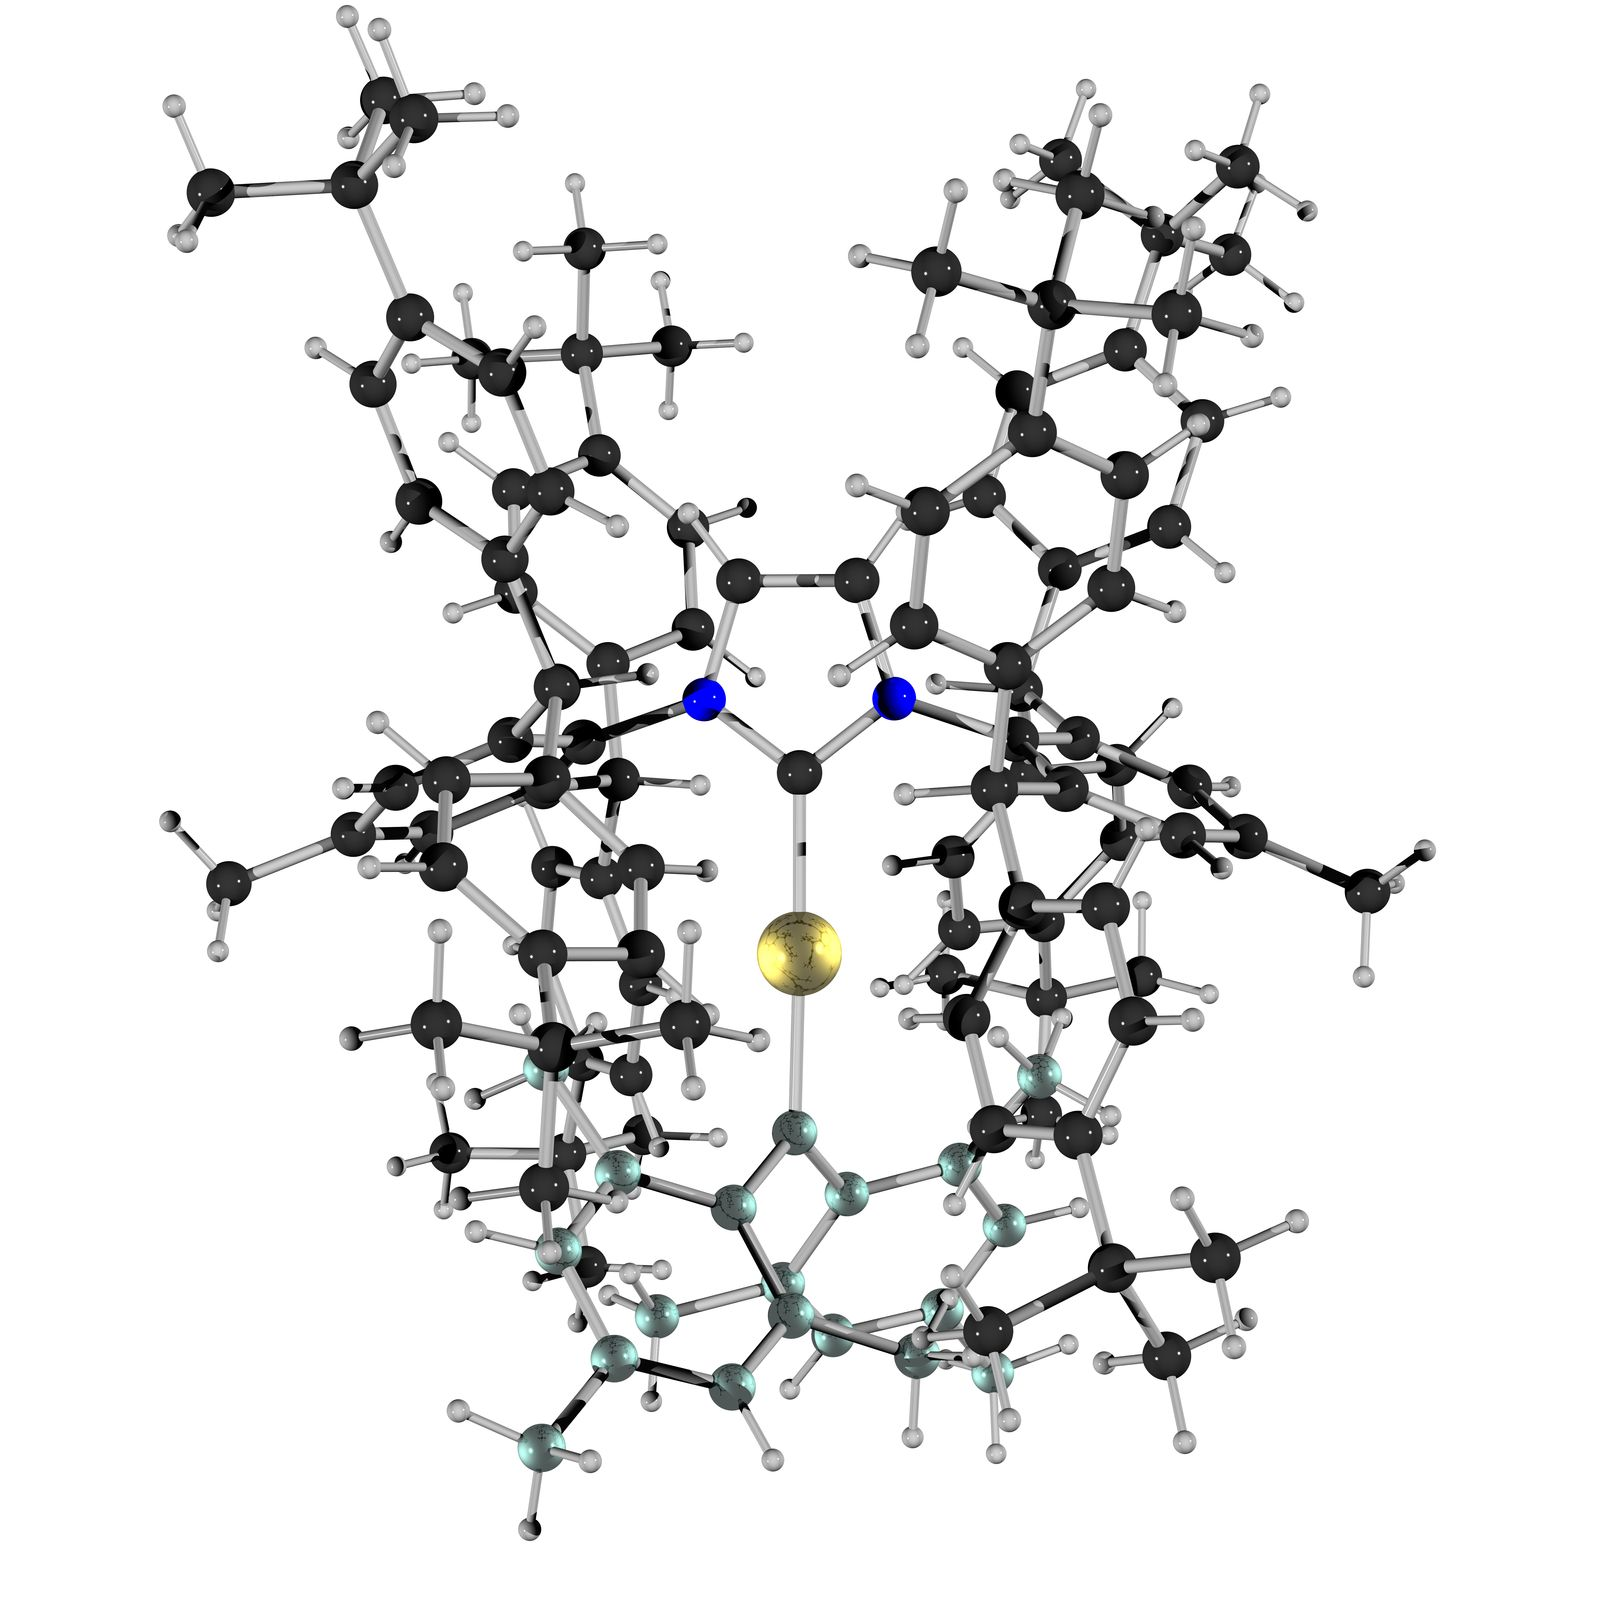 Chemists Succeed In Isolating Carbon Gold Compound Of